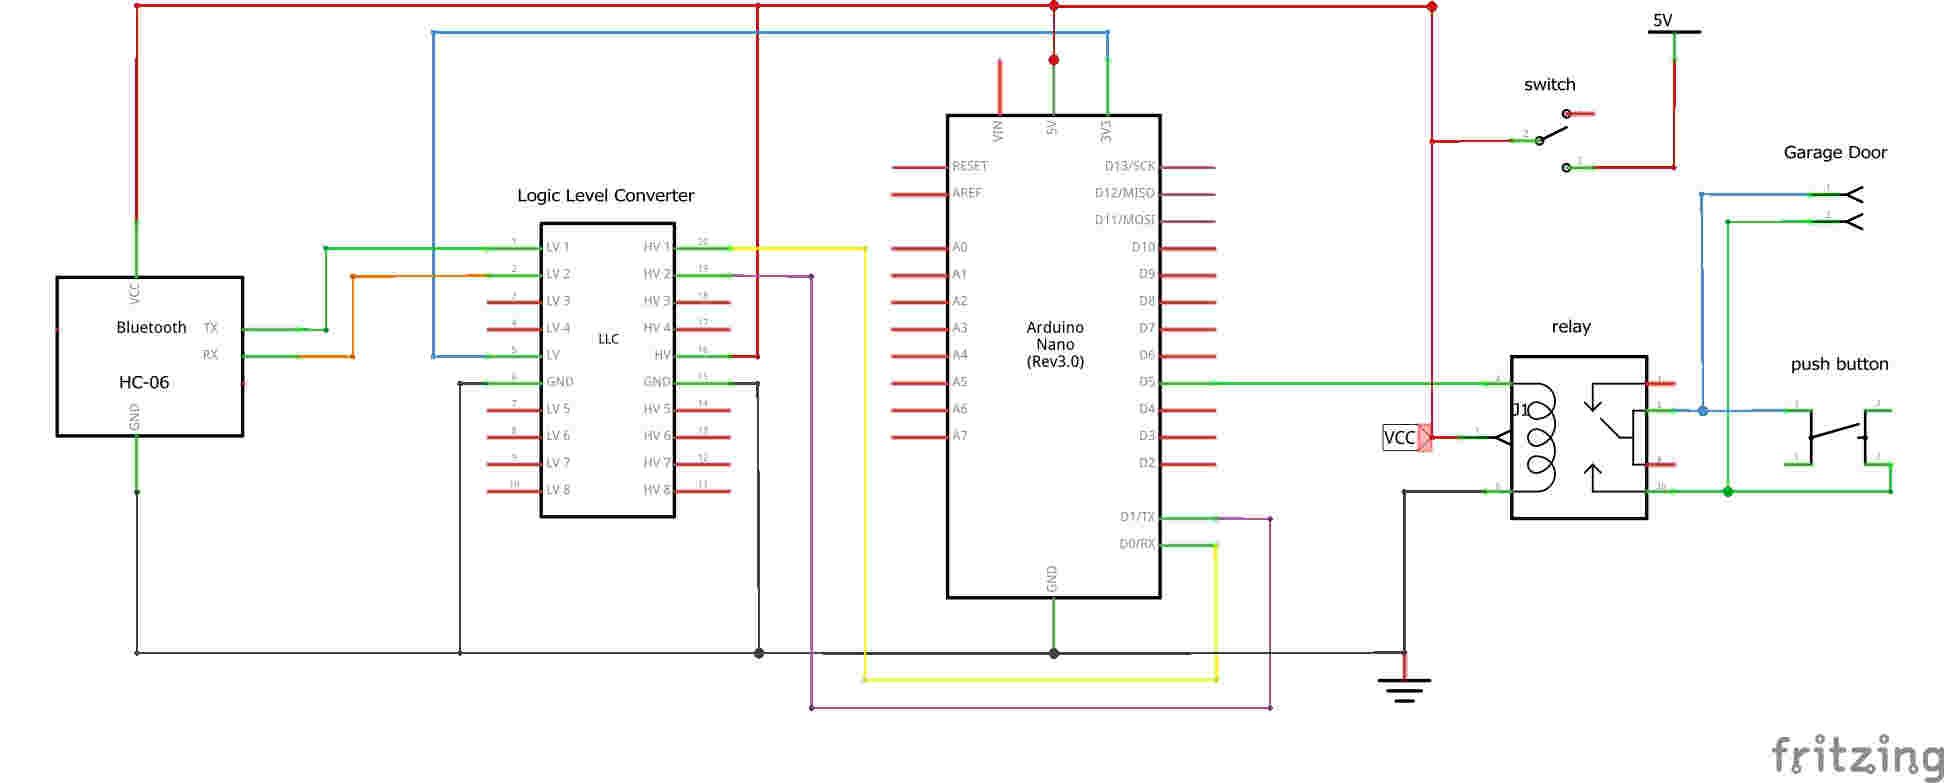 How To Bluetooth Control Your Garage Door With A Arduino And Smart The Schematic Of Darkactivated Switch Circuit We Will Build Is